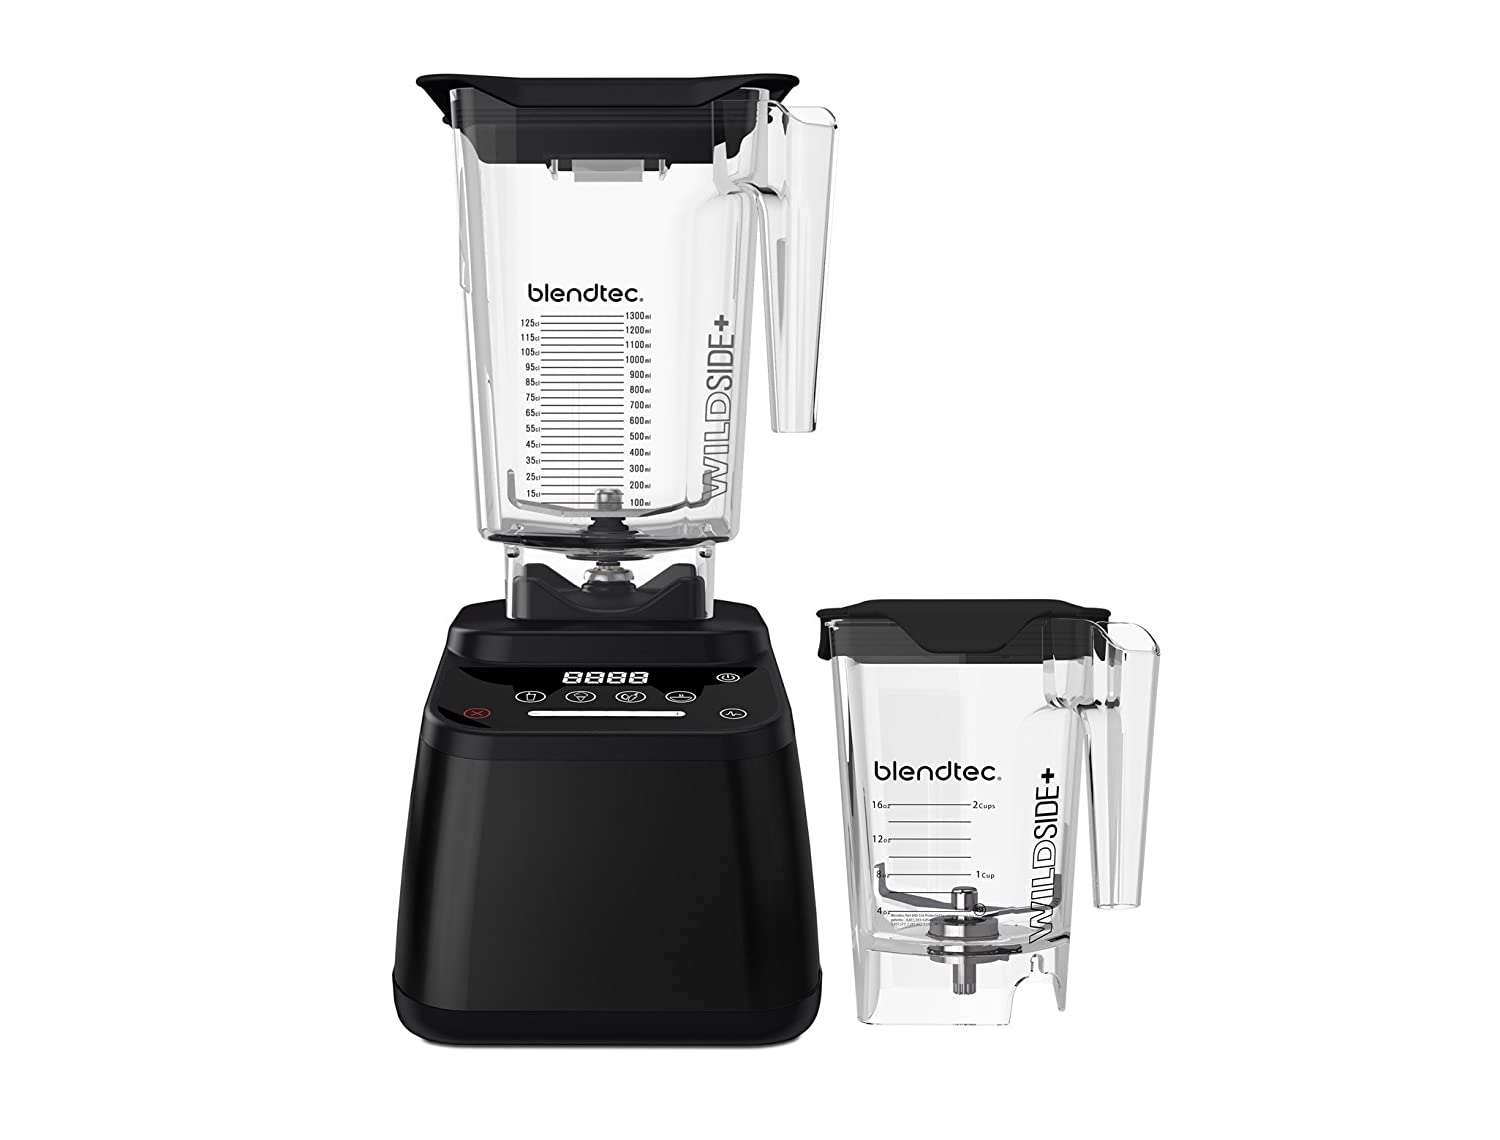 Blendtec Designer 625 Blender - WildSide+ Jar (90 oz) and Mini WildSide+ Jar (46 oz) BUNDLE - Professional-Grade Power - 4 Pre-Programmed Cycles - 6-Speeds - Sleek and Slim - Black